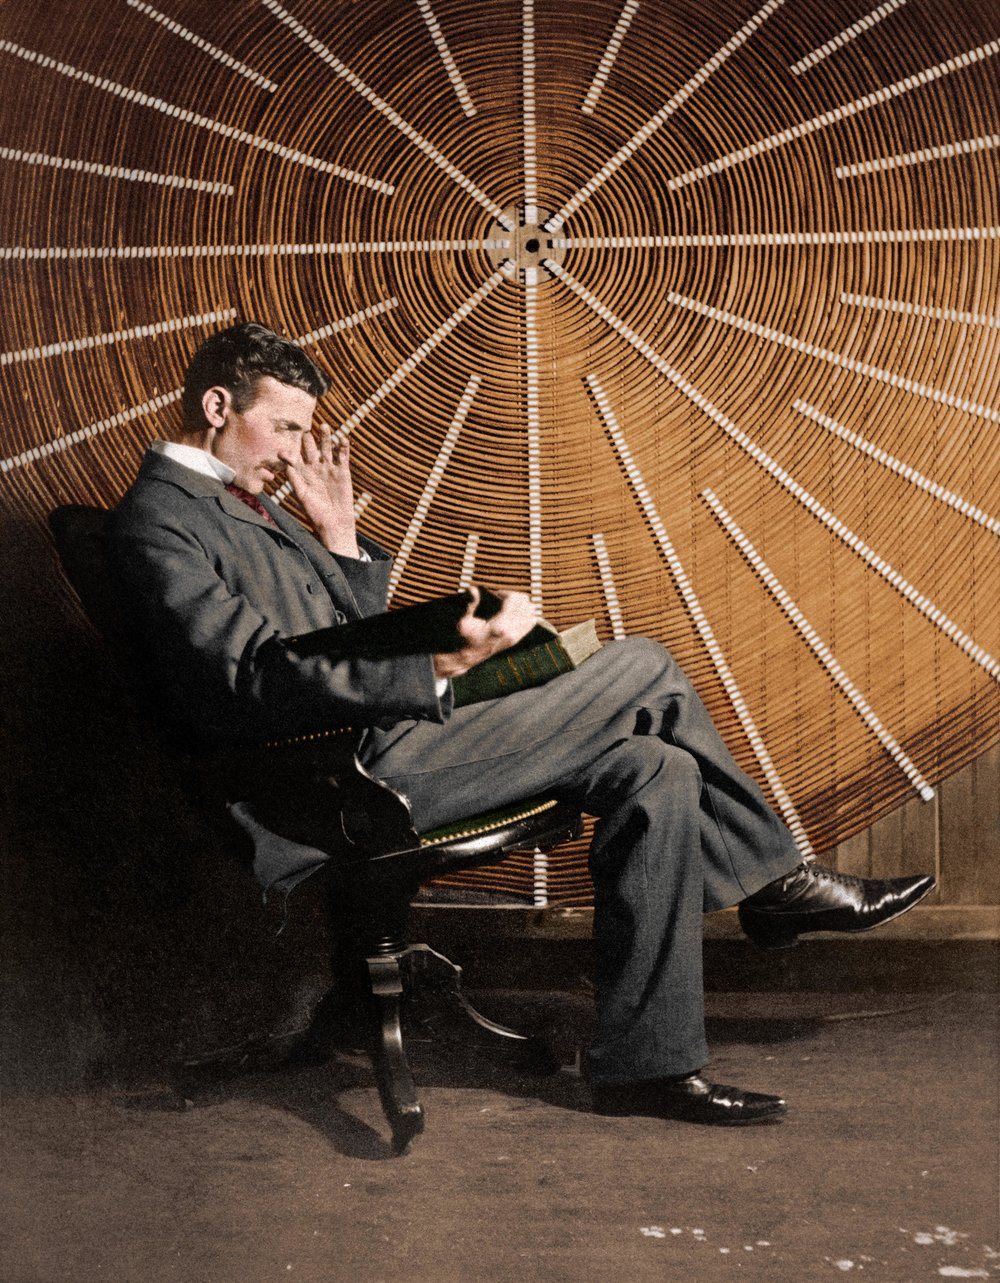 Scientist and Inventor, Nikola Tesla, reading 'Theoria Philosophiae Naturalis' by Roger Boscovich in front of the spiral coil of his high-frequency transformer in New York, USA in 1896. Colorization by  Mads Madsen